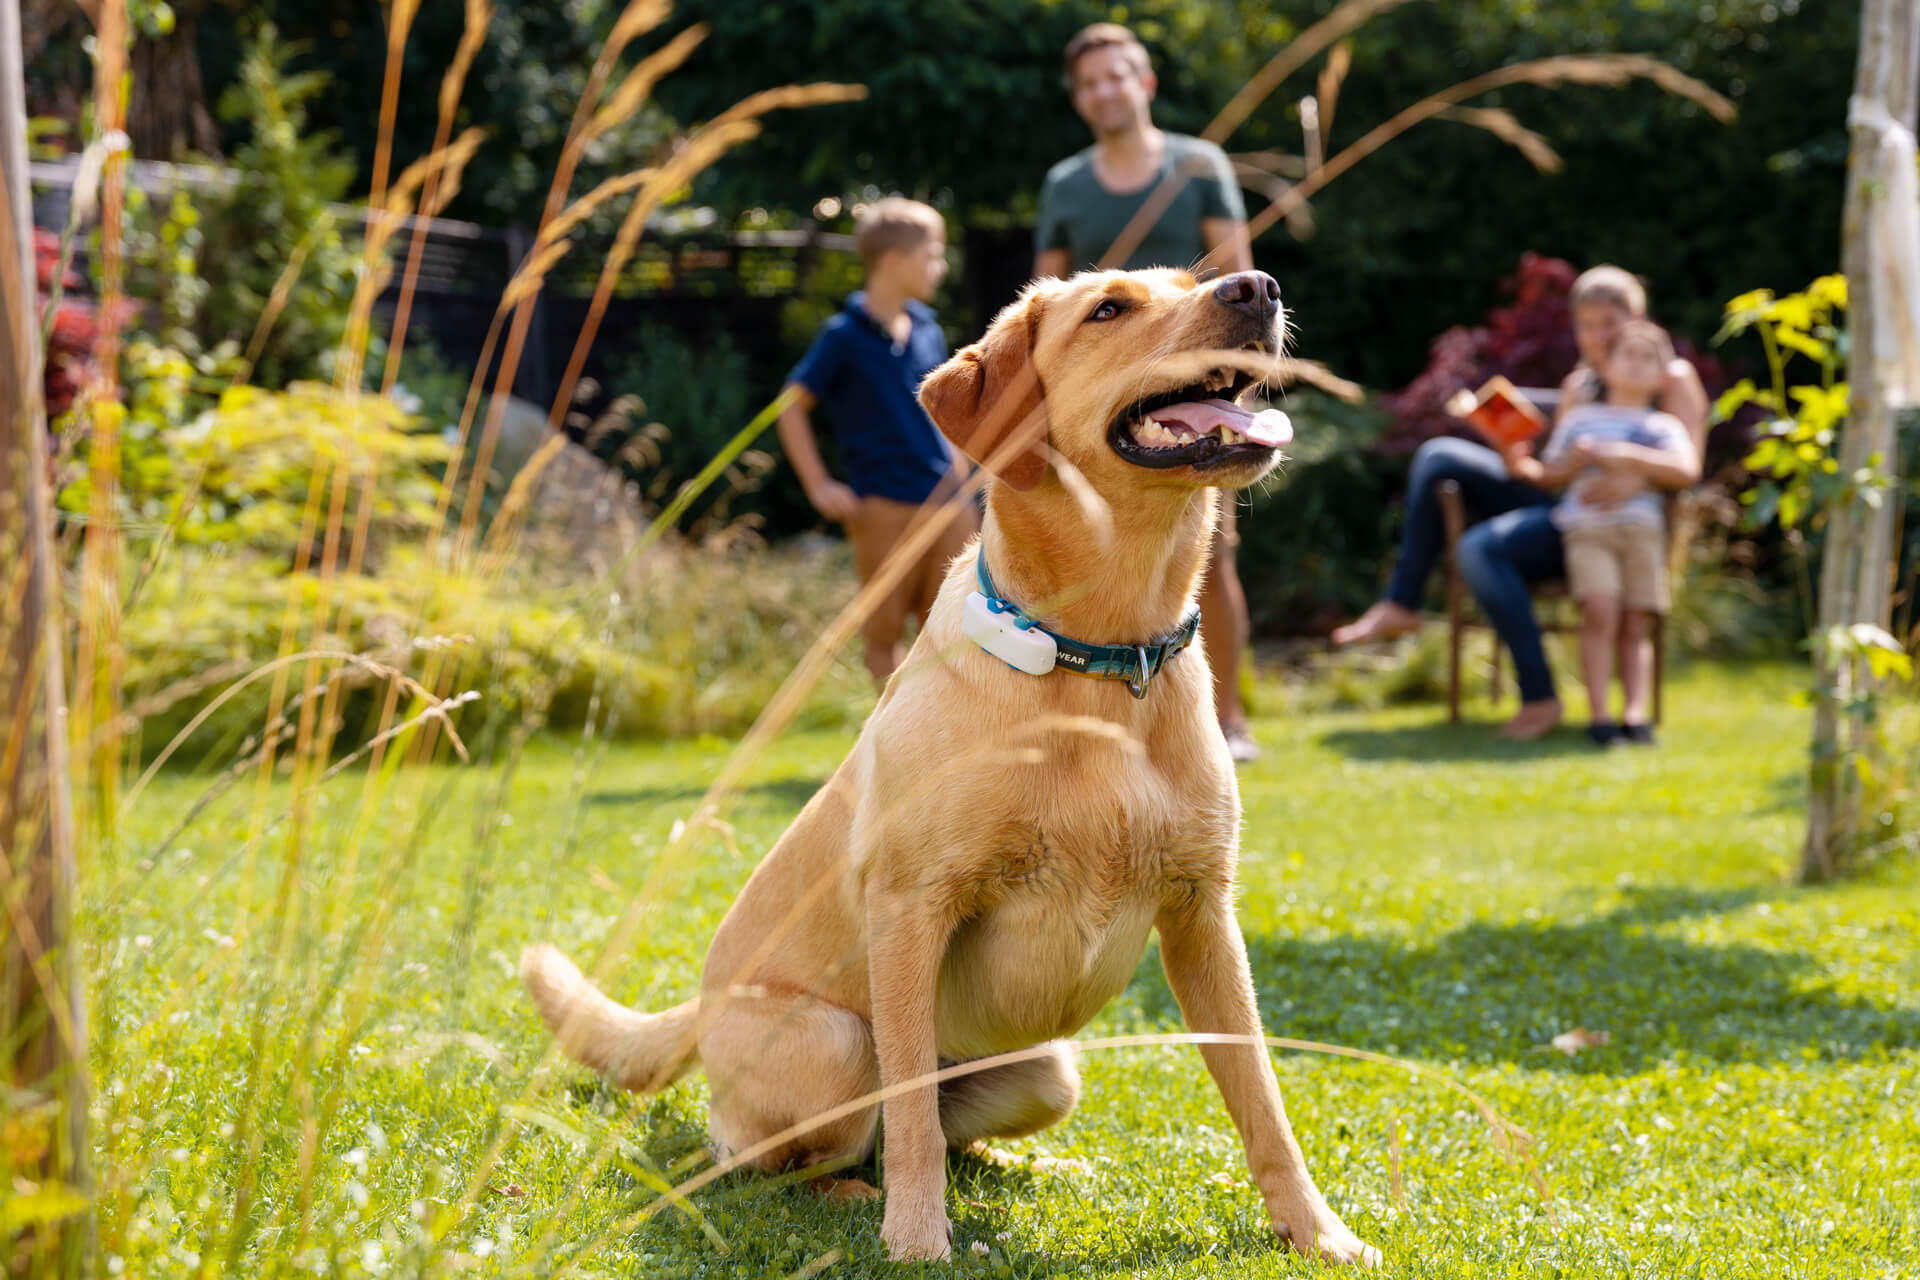 10 Reasons To Get Your Dog A GPS Tracker